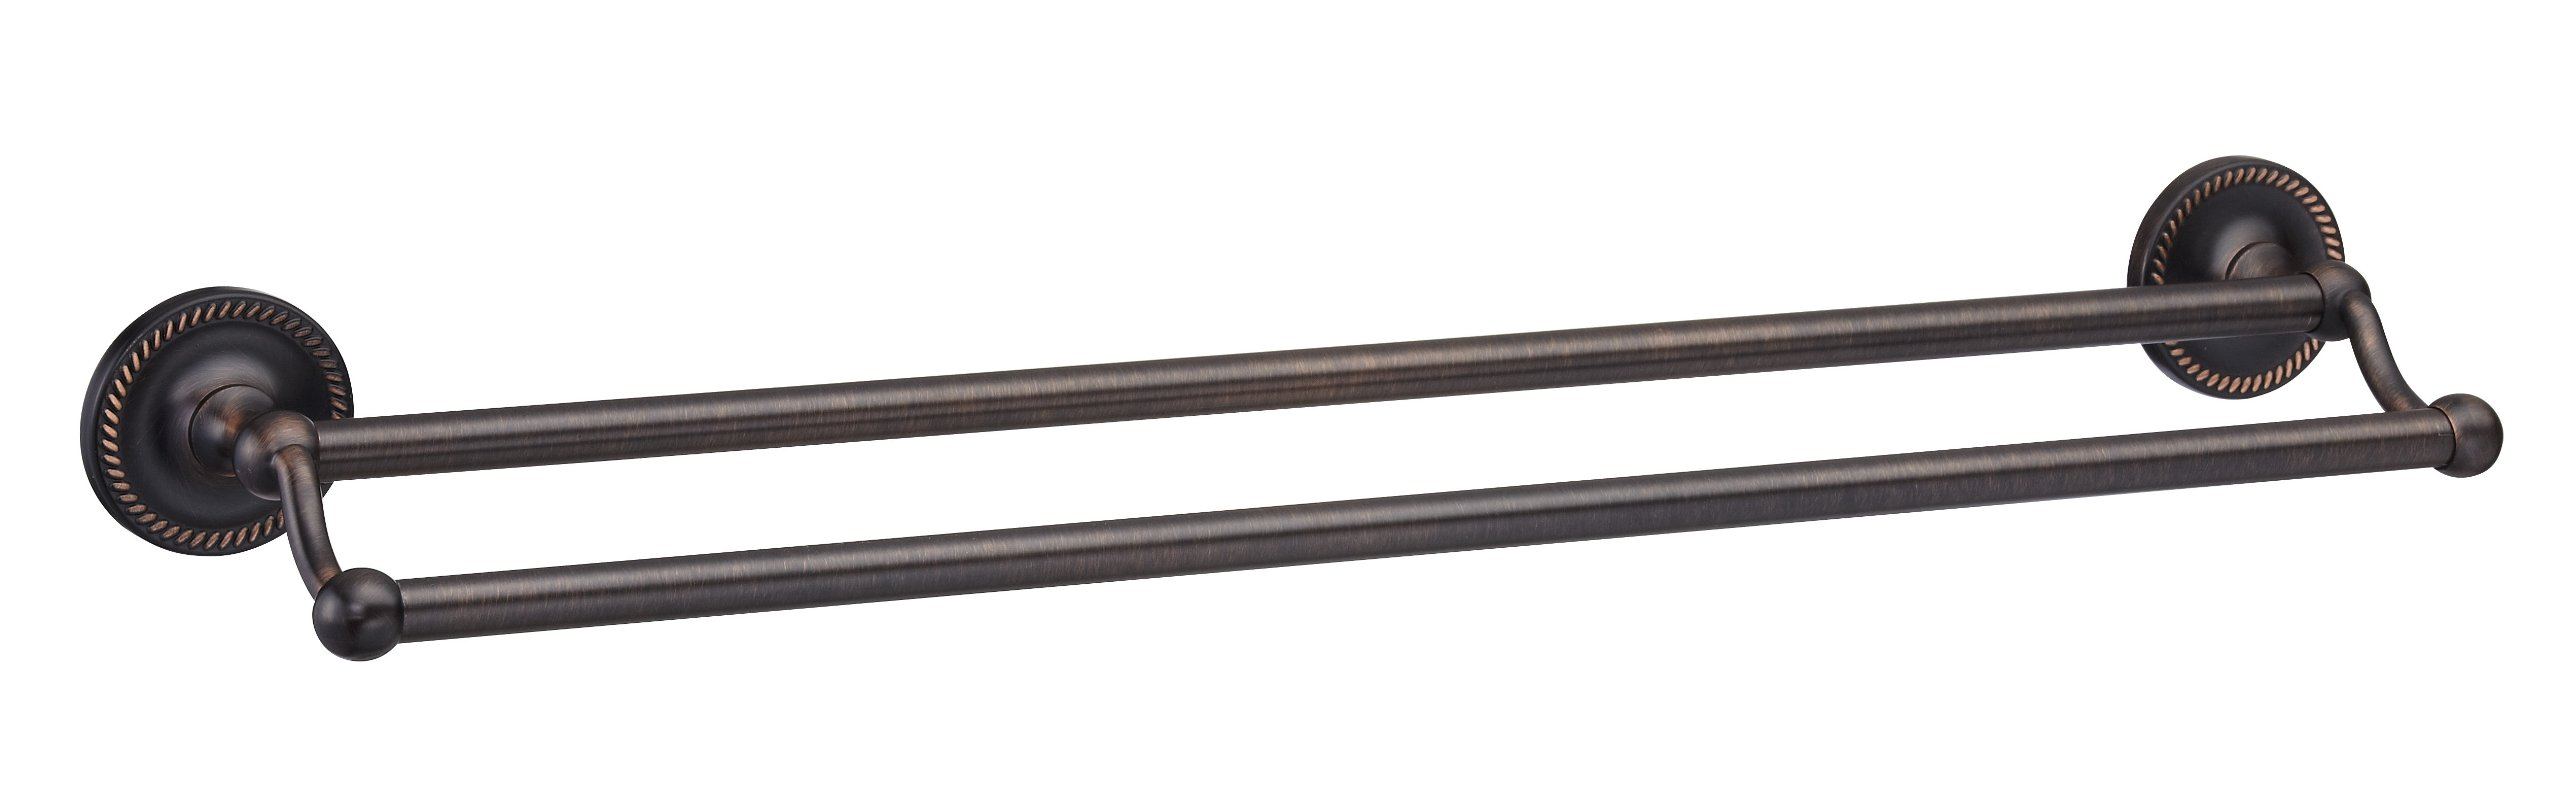 Designers Impressions Naples Oil Rubbed Bronze 24'' Double Towel Bar